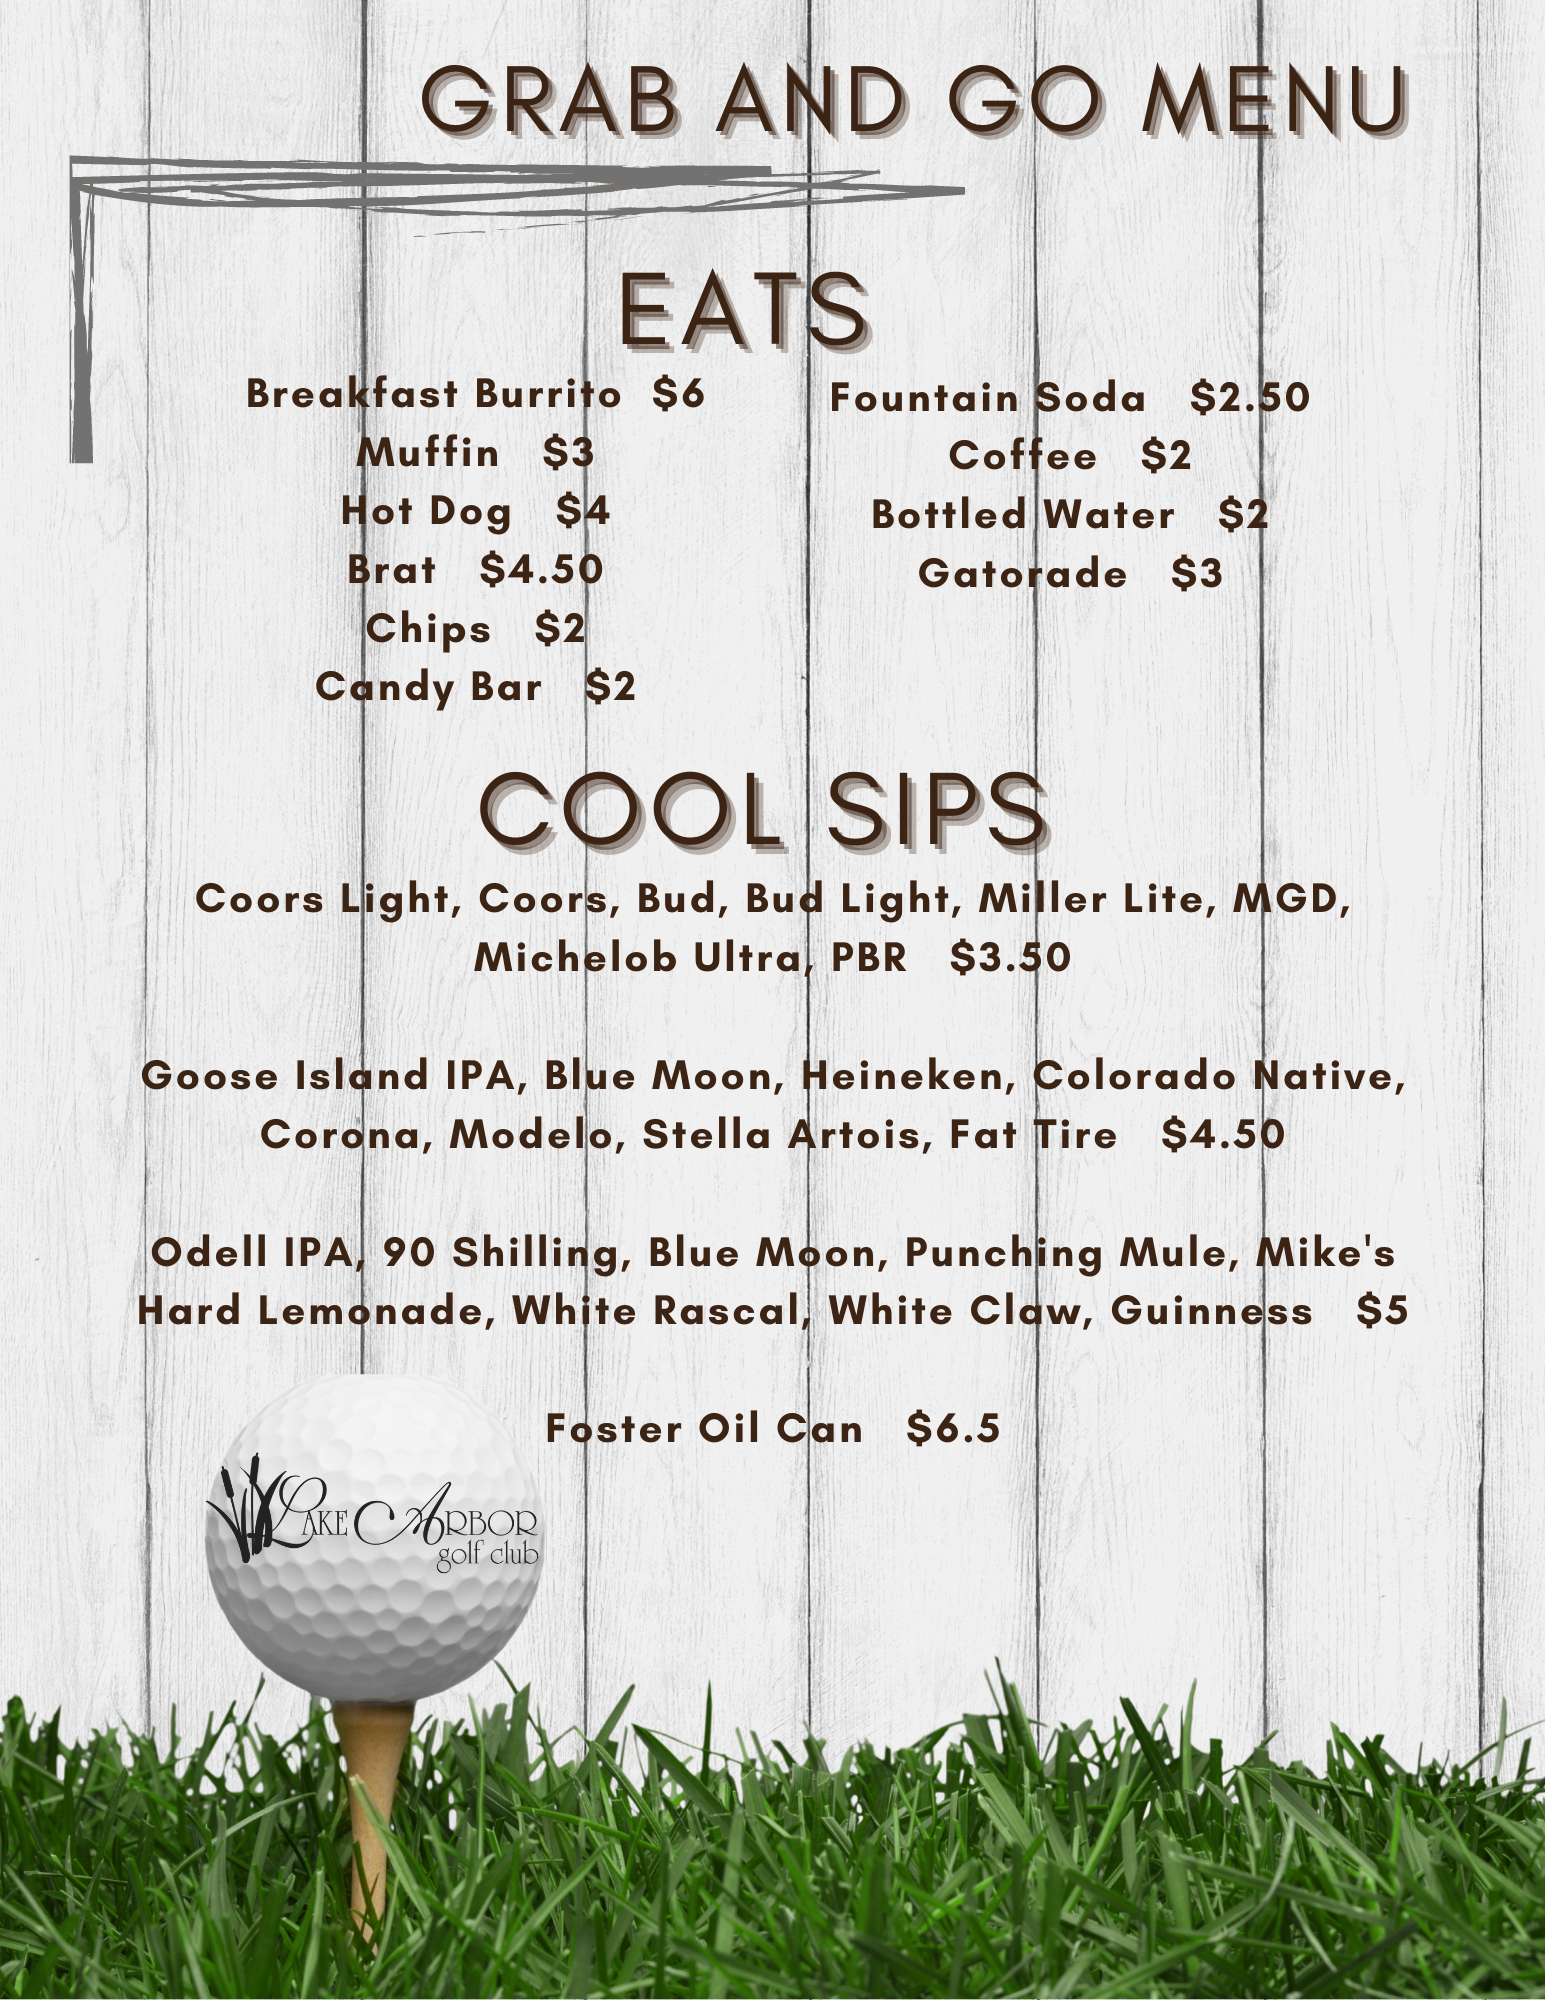 Grab and Go Menu Web 04.05.21 1